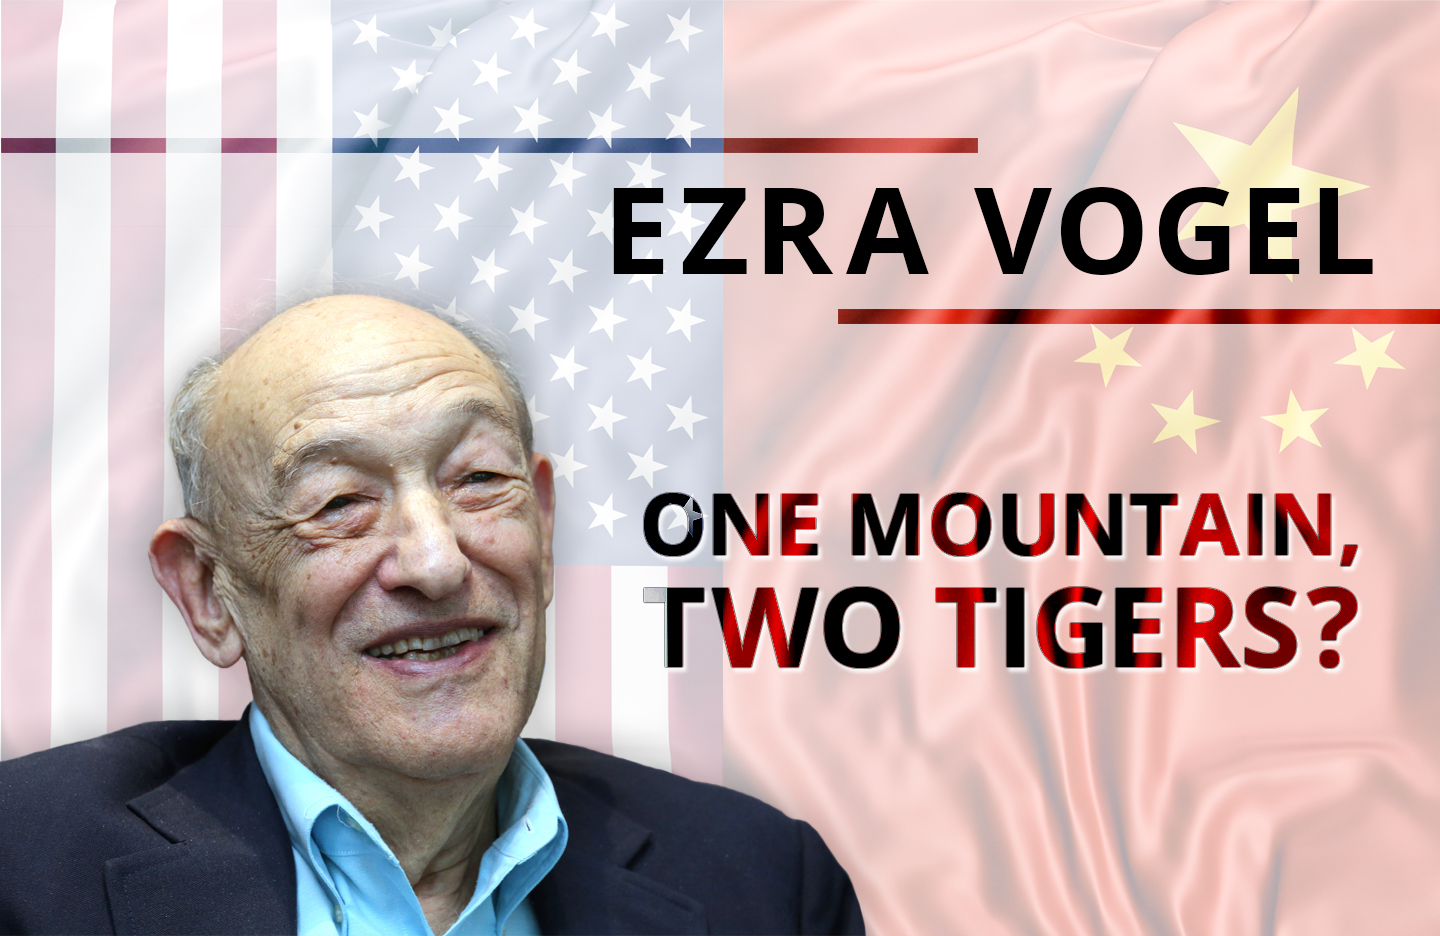 Ezra Vogel, Henry Ford II Professor of the Social Sciences Emeritus, Harvard University. (Vogel photo: Neoh Kee Leng, Graphic: Jace Yip)